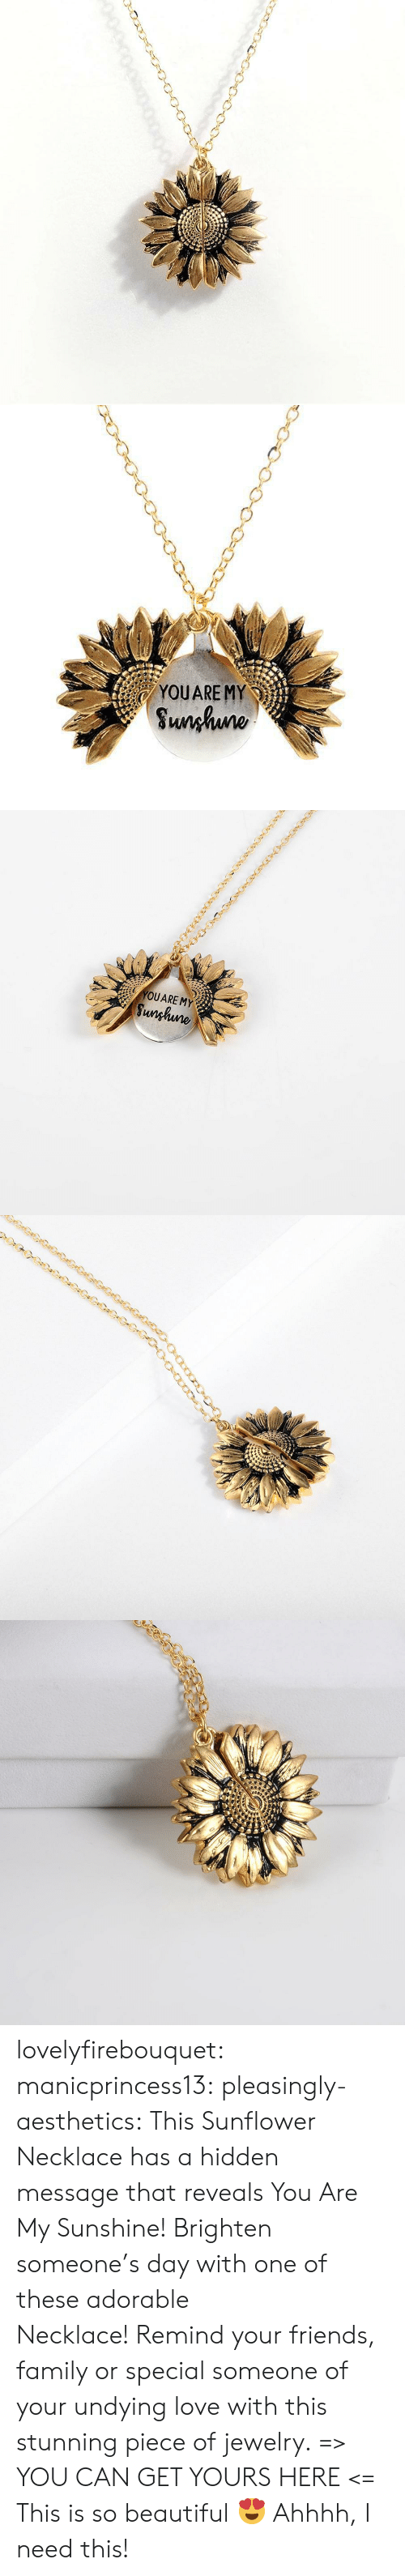 Beautiful, Family, and Friends: YOUARE MY  Sunhuno   YOUARE MY  Sunghune lovelyfirebouquet:  manicprincess13: pleasingly-aesthetics:  This Sunflower Necklace has a hidden message that reveals You Are My Sunshine! Brighten someone's day with one of these adorable Necklace!Remind your friends, family or special someone of your undying love with this stunning piece of jewelry. => YOU CAN GET YOURS HERE <=   This is so beautiful 😍   Ahhhh, I need this!